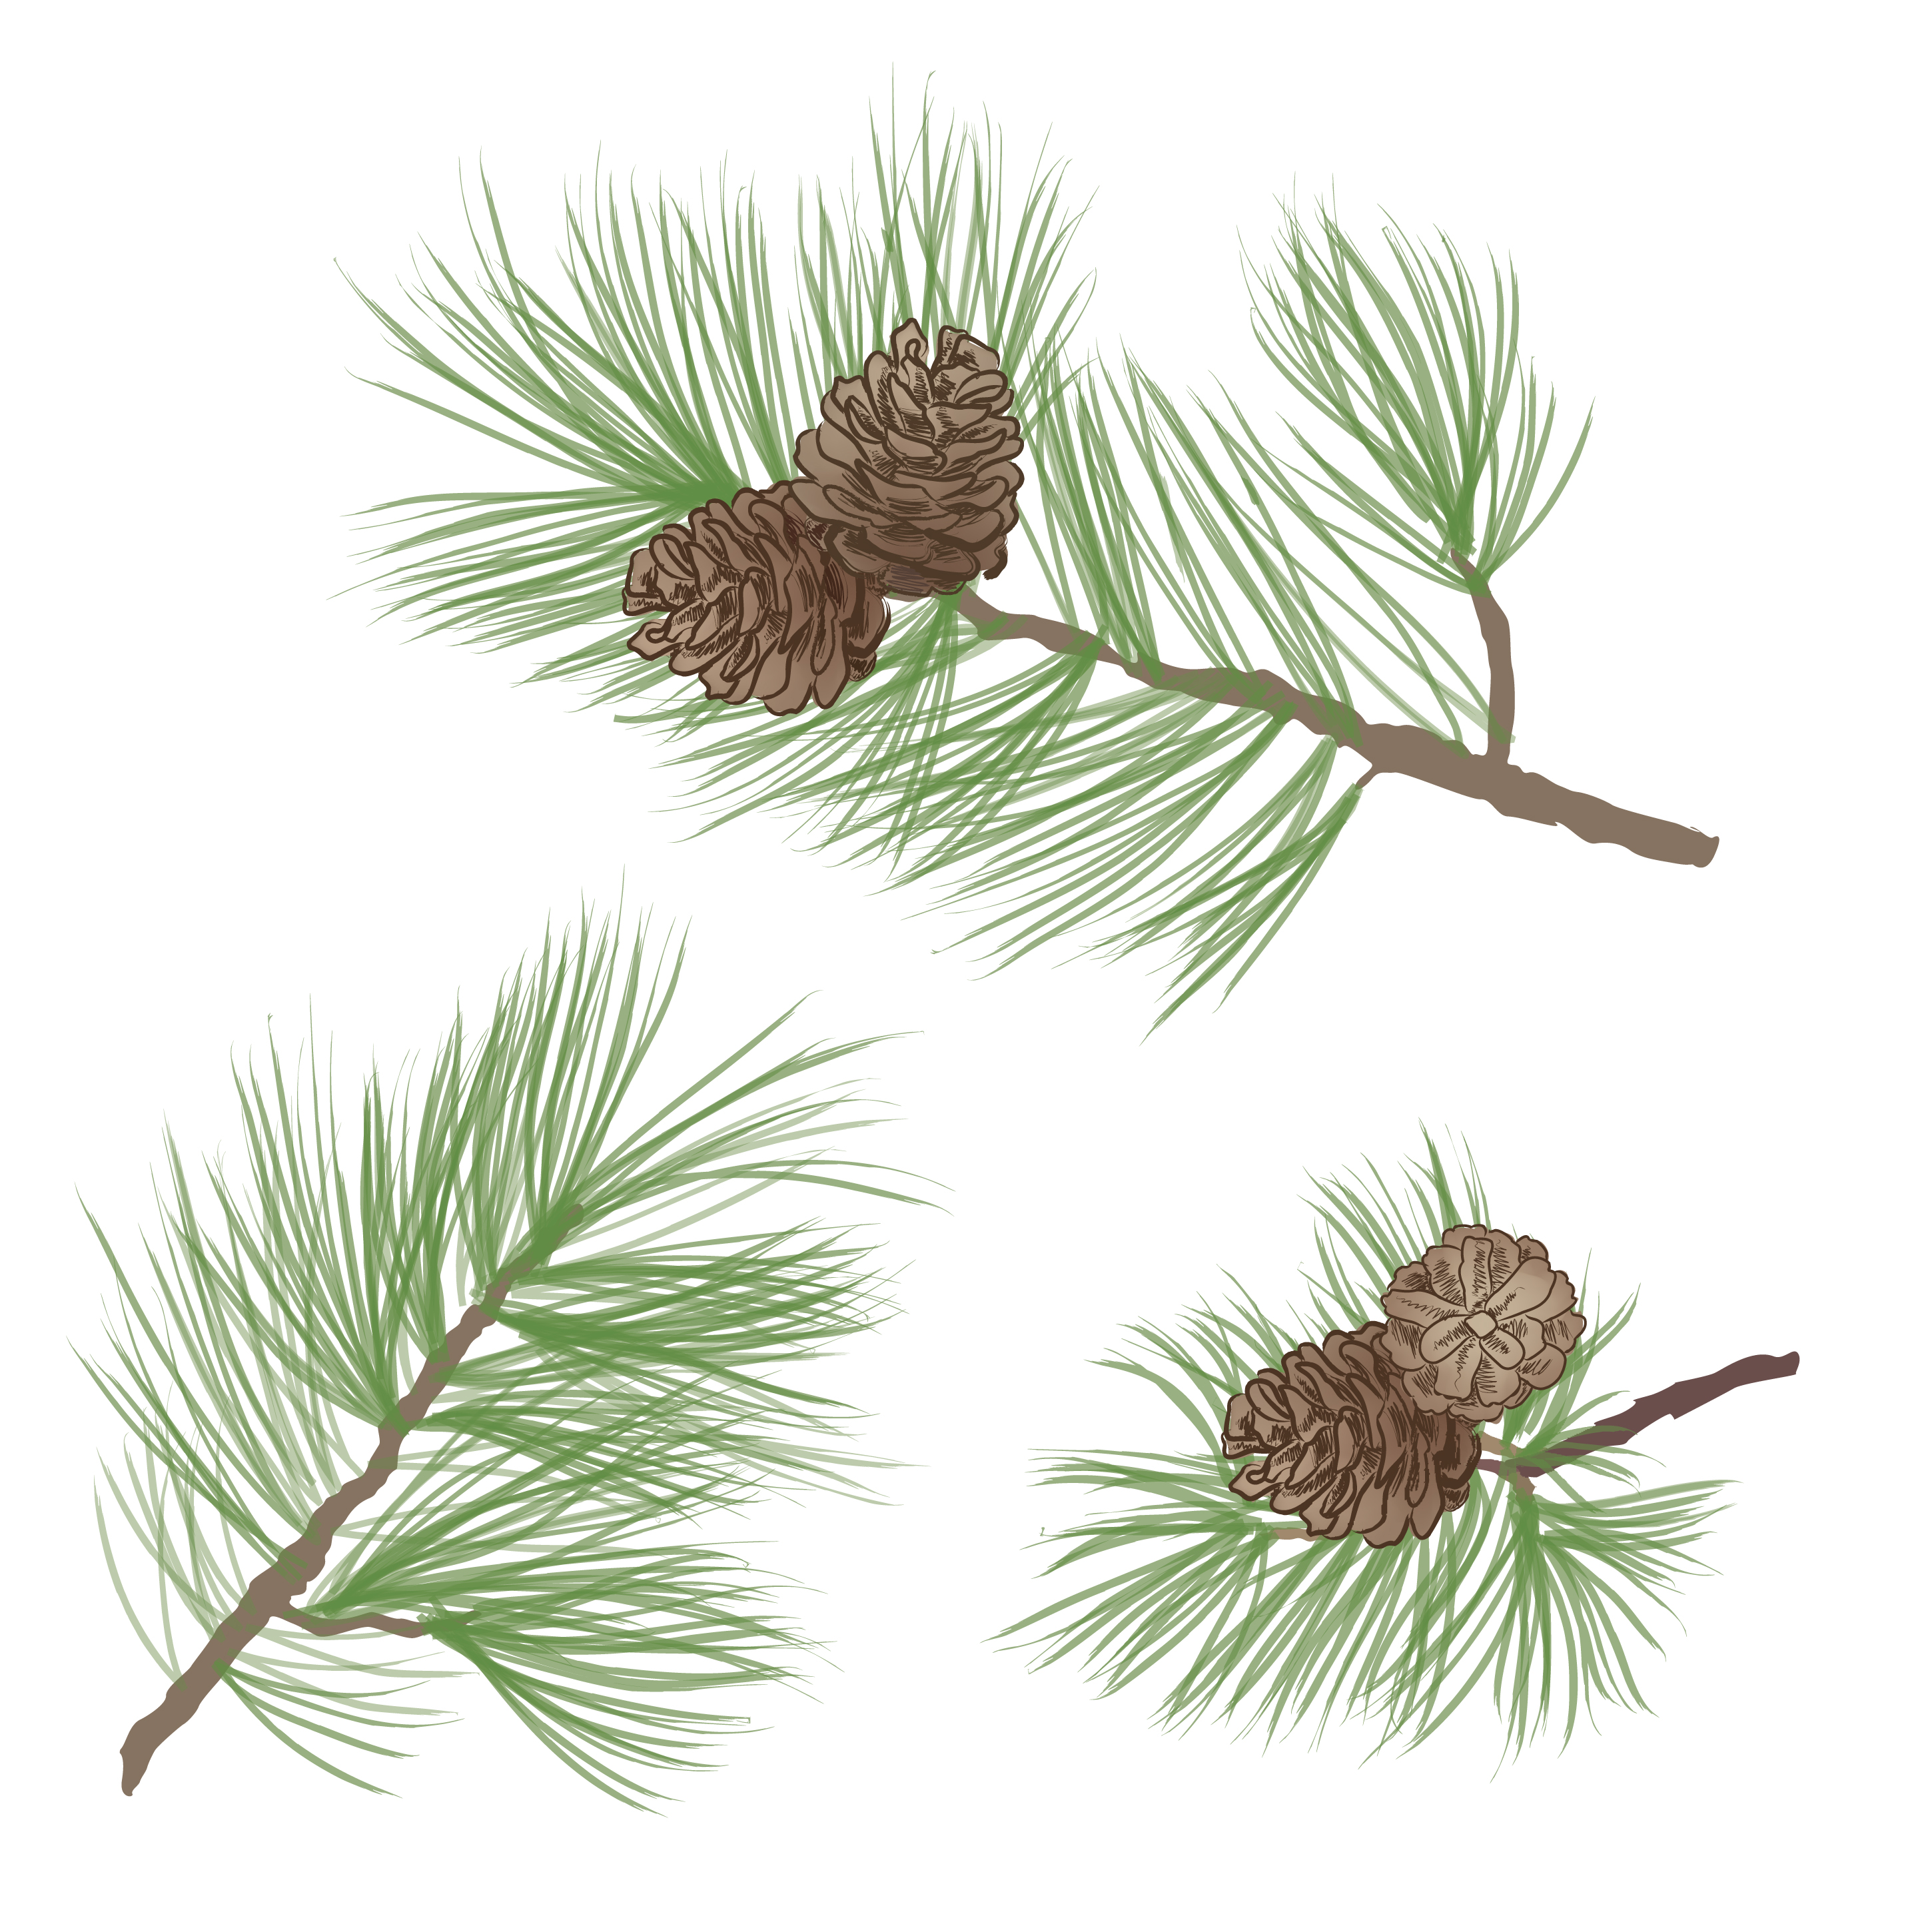 Pinecone. Pine tree branch isolated. Floral evergreen ...